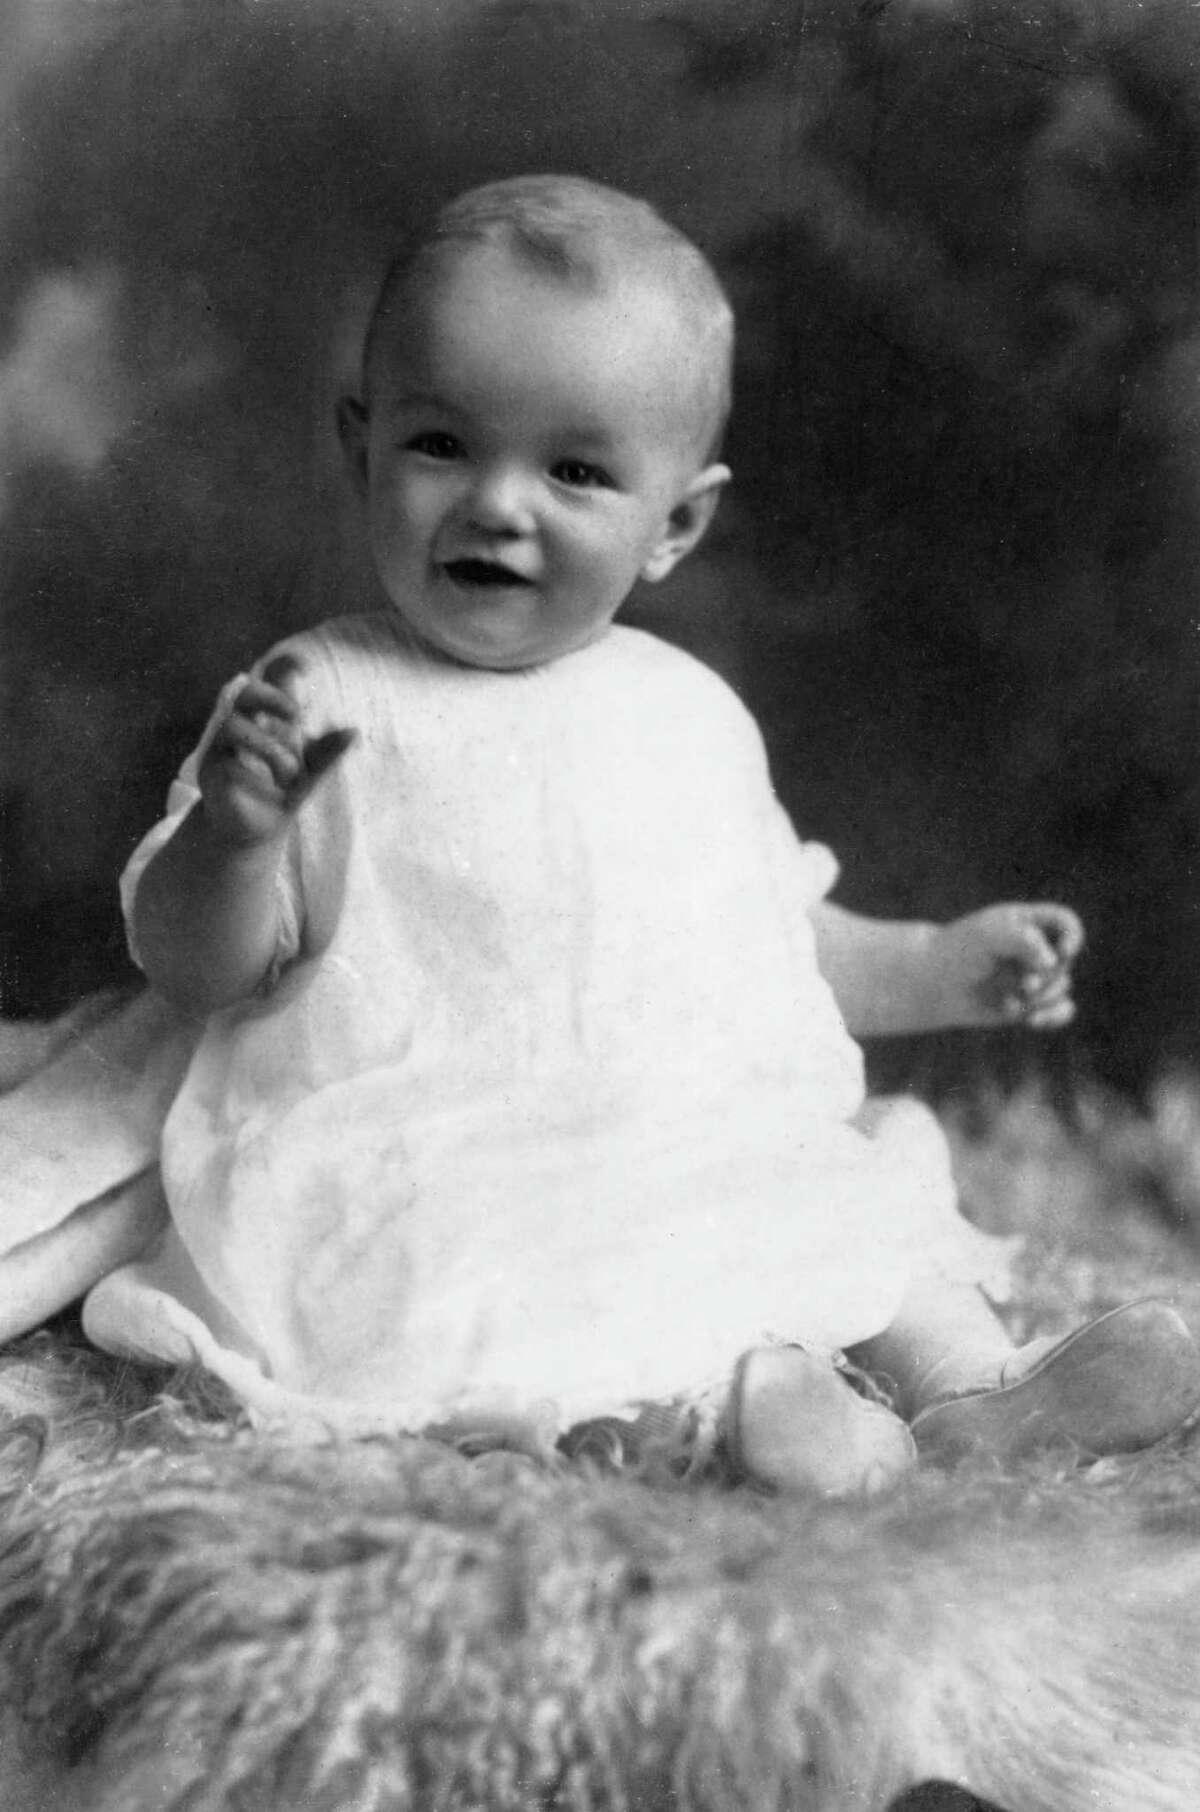 circa 1927: Studio portrait of American actor Marilyn Monroe (born Norma Jean Mortenson, 1926 - 1962) at the age of six months, sitting on a woolly rug in a white smock. (Photo by Hulton Archive/Getty Images)